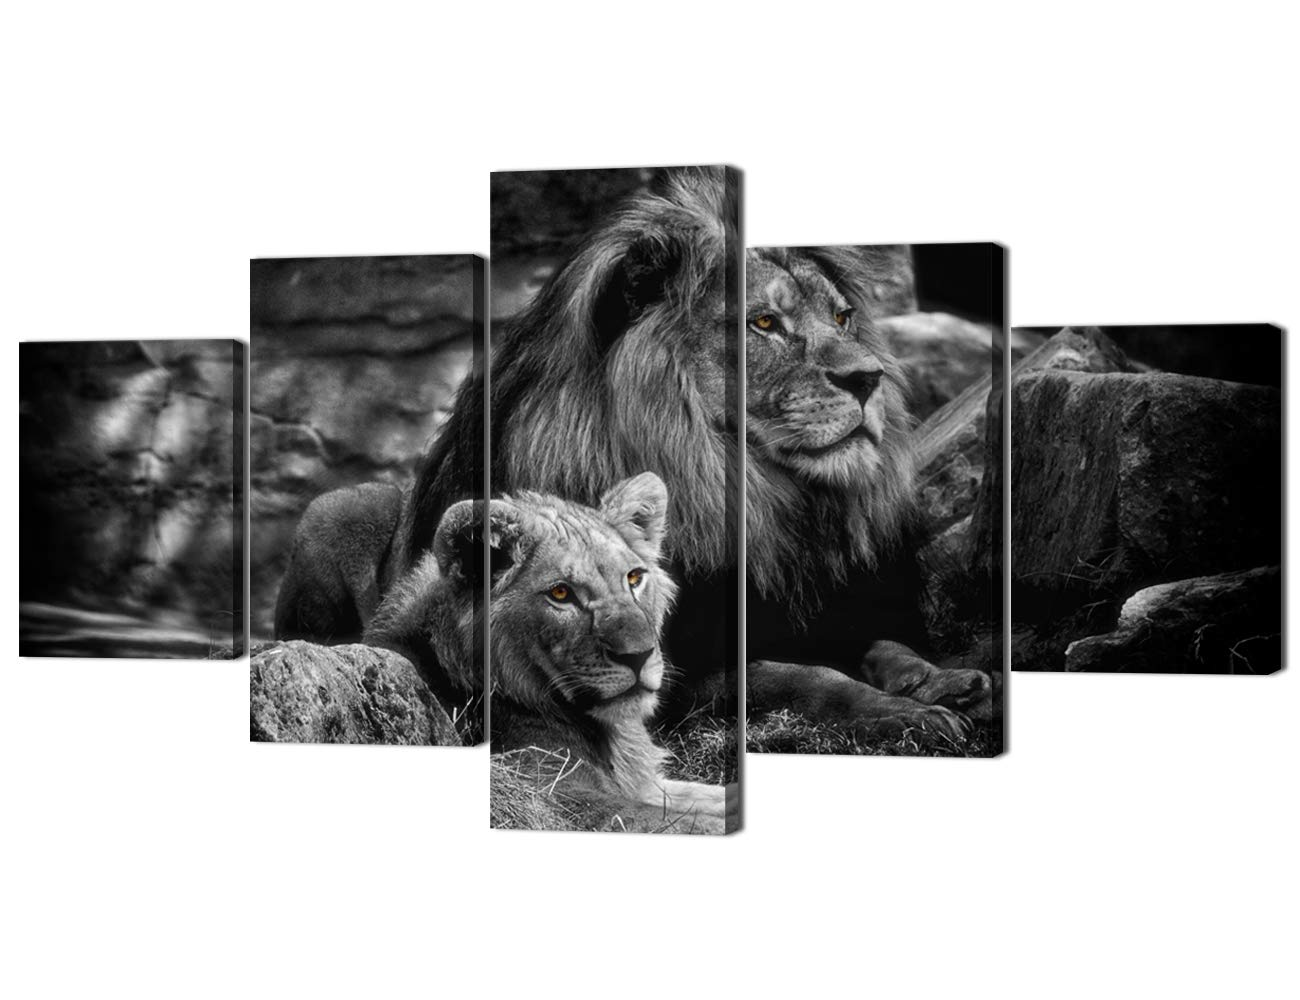 Artwork-01 60''W x 32''H Yatsen Bridge Framed Lion Pictures Wall Decor Modern 5 Panels White Black Lions Canvas Wall Art Easy to Hang Animal Posters for Living Room Bedroom Decor - 60''W x 32''H